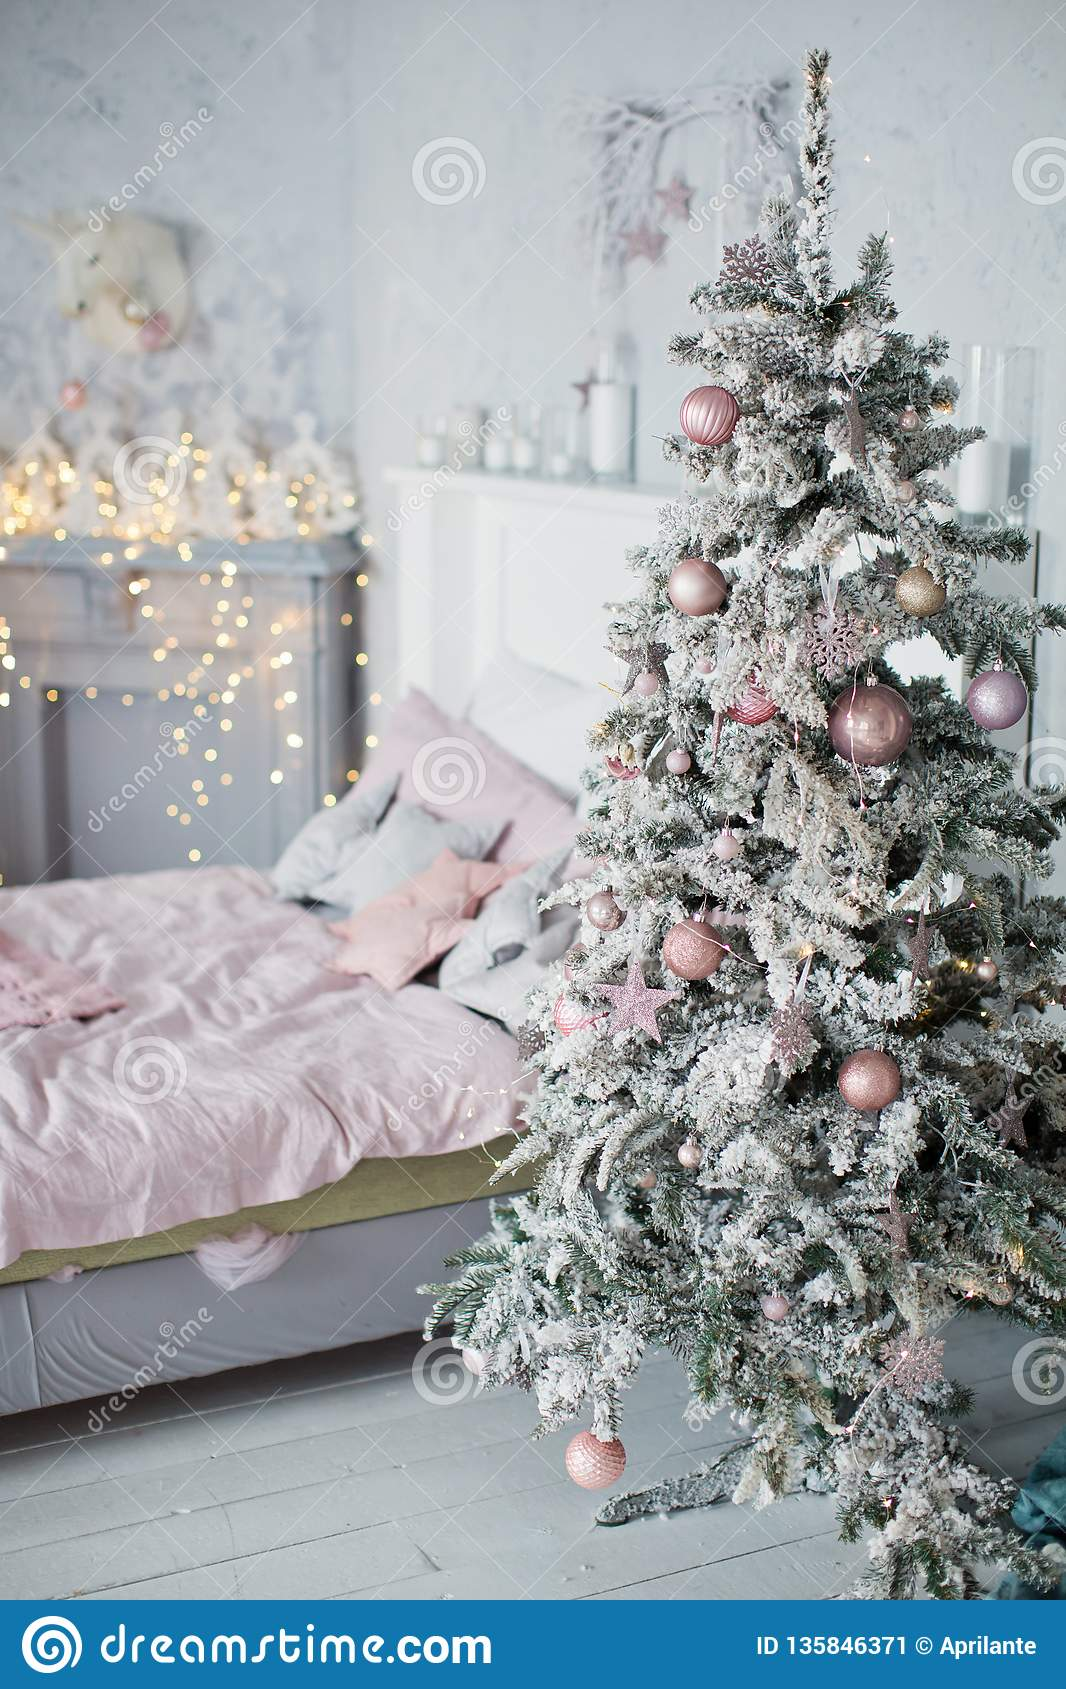 Christmas Bedroom With Pink And Grey Decoration Stock Image Image Of Interior Gift 135846371